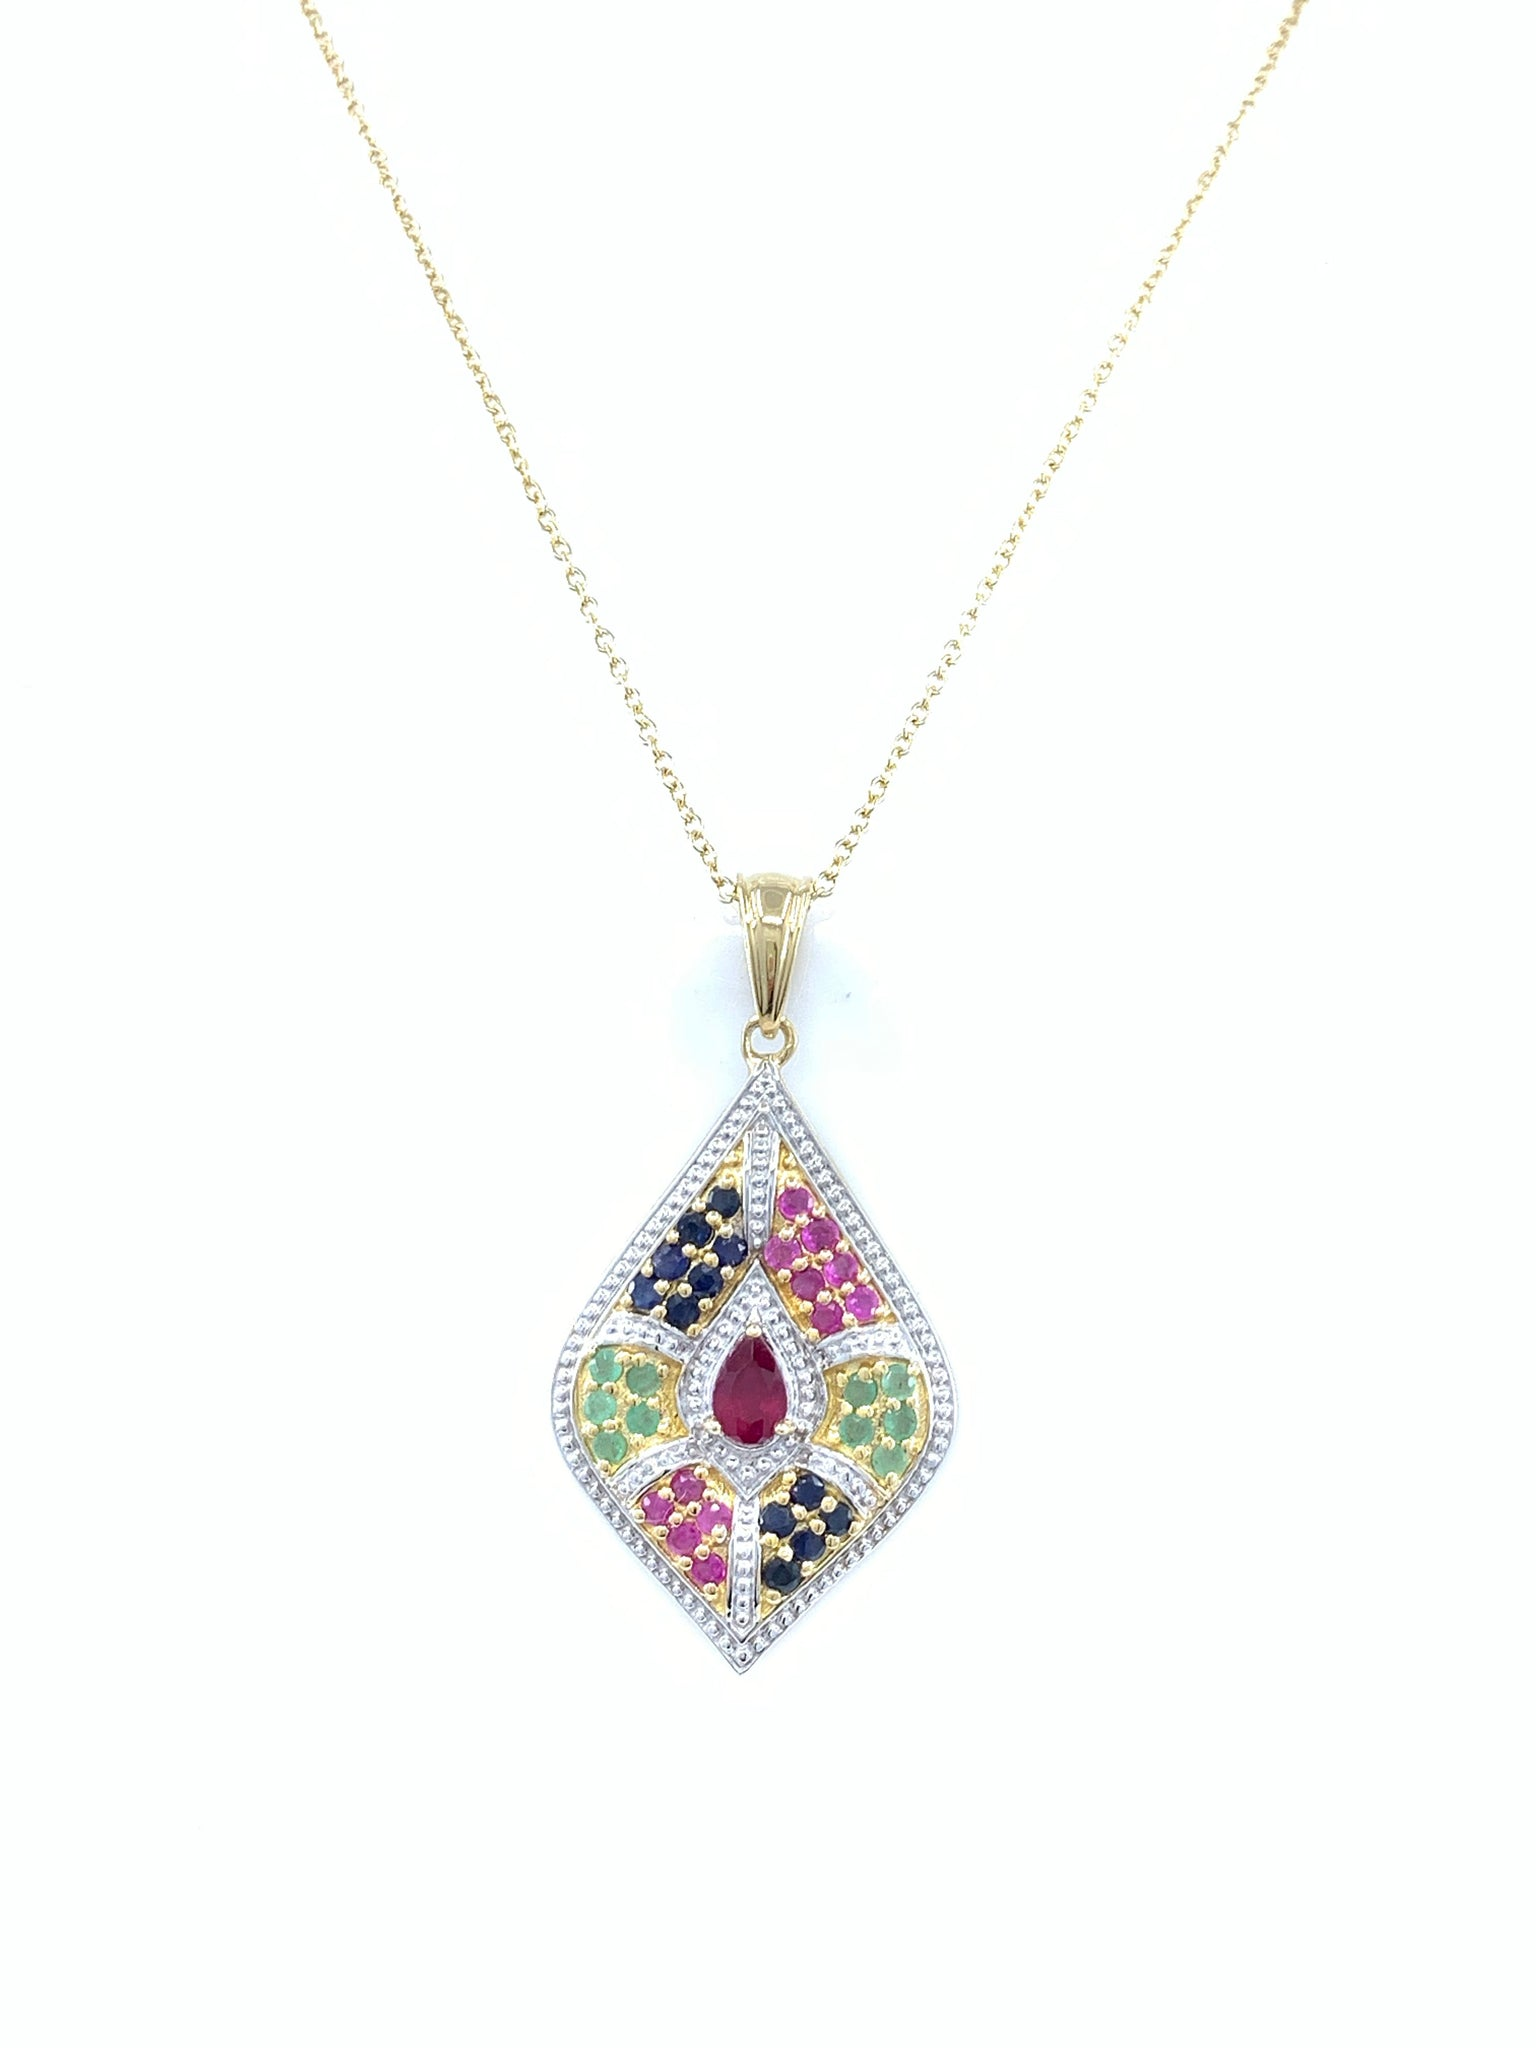 Fascinating 14k Gold Emerald Ruby and Sapphire Pendant